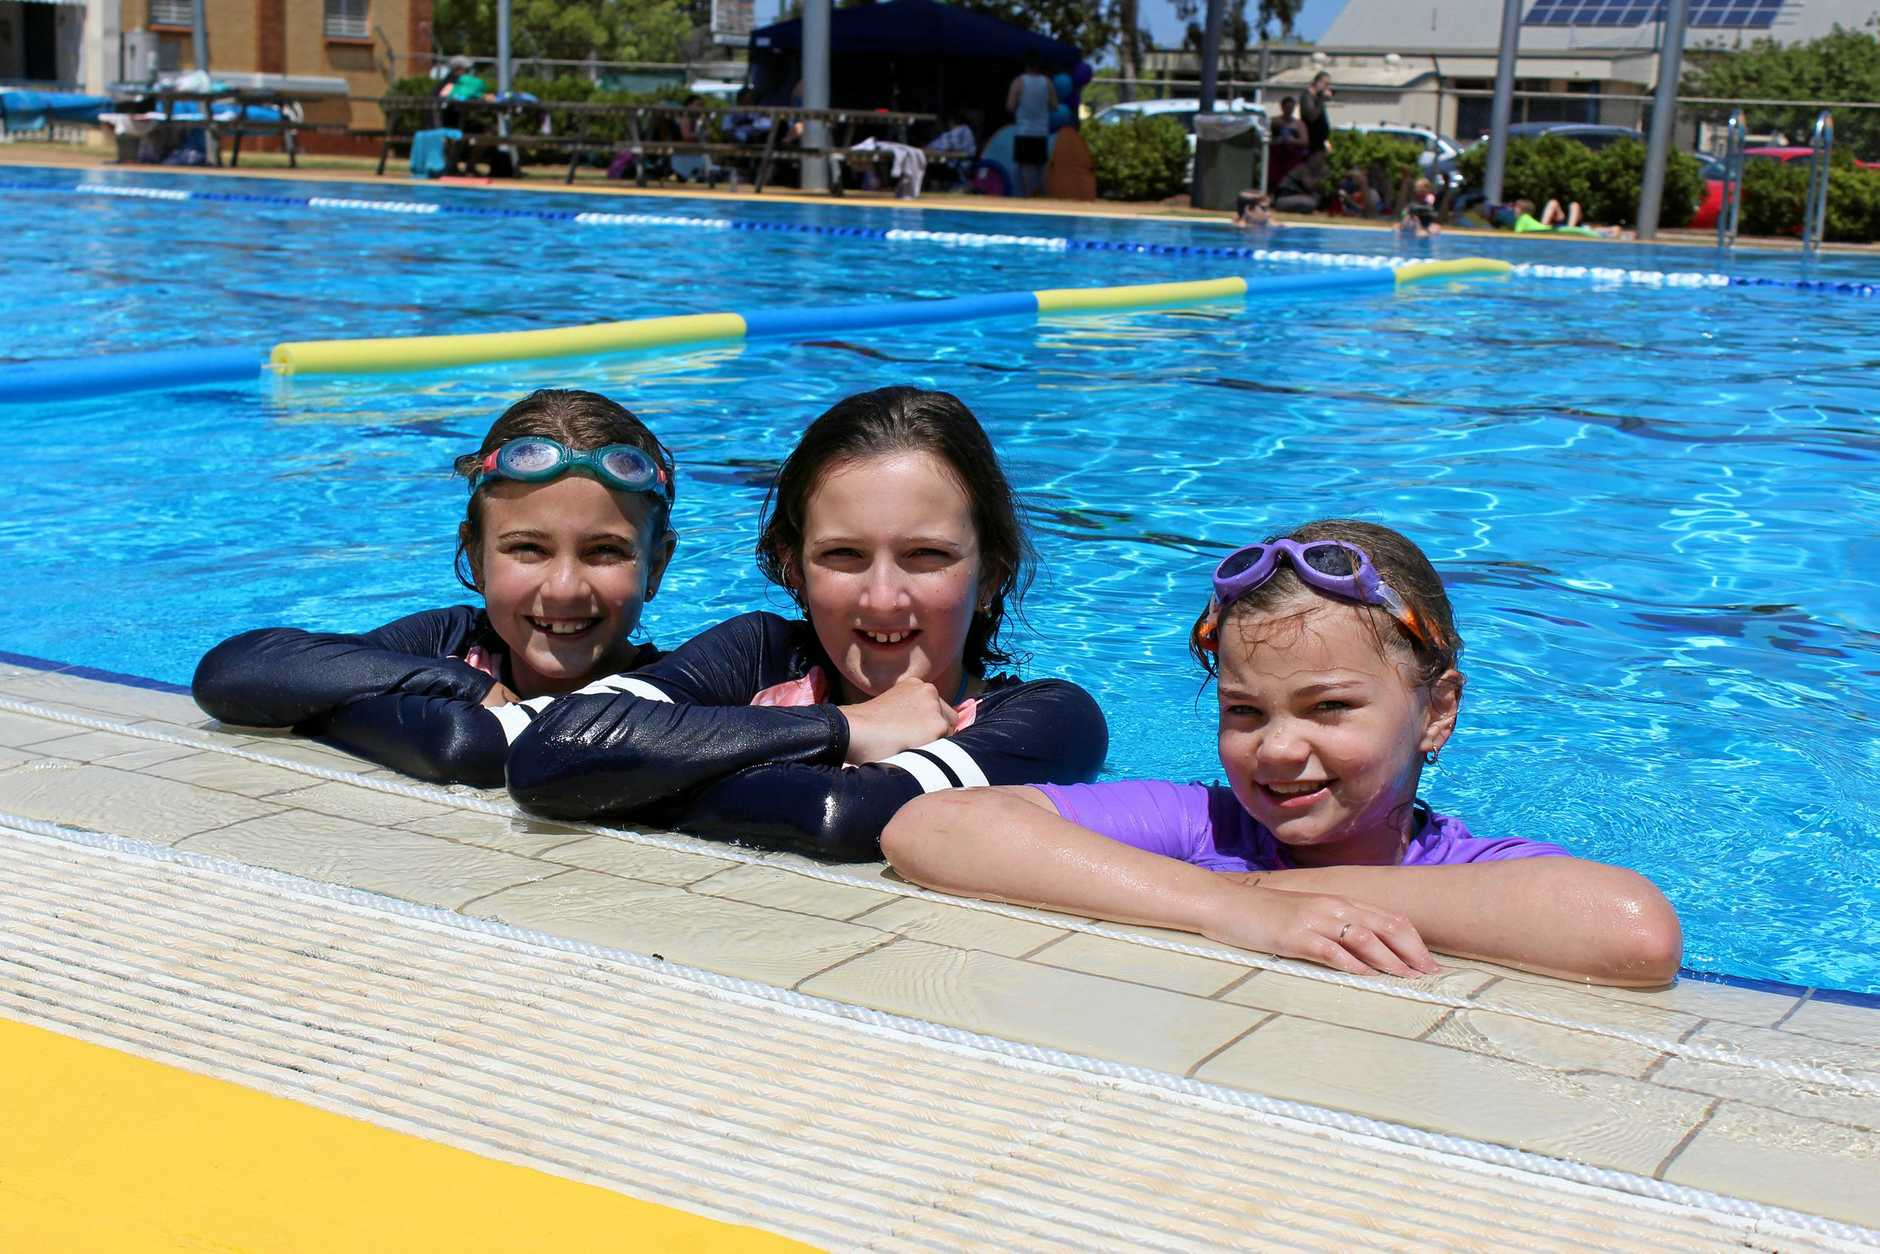 FUN WITH FRIENDS: Amelia and Madison Postlethwaite along side Lydia Koy at the family fun day at Kingaroy Aquatic Centre.